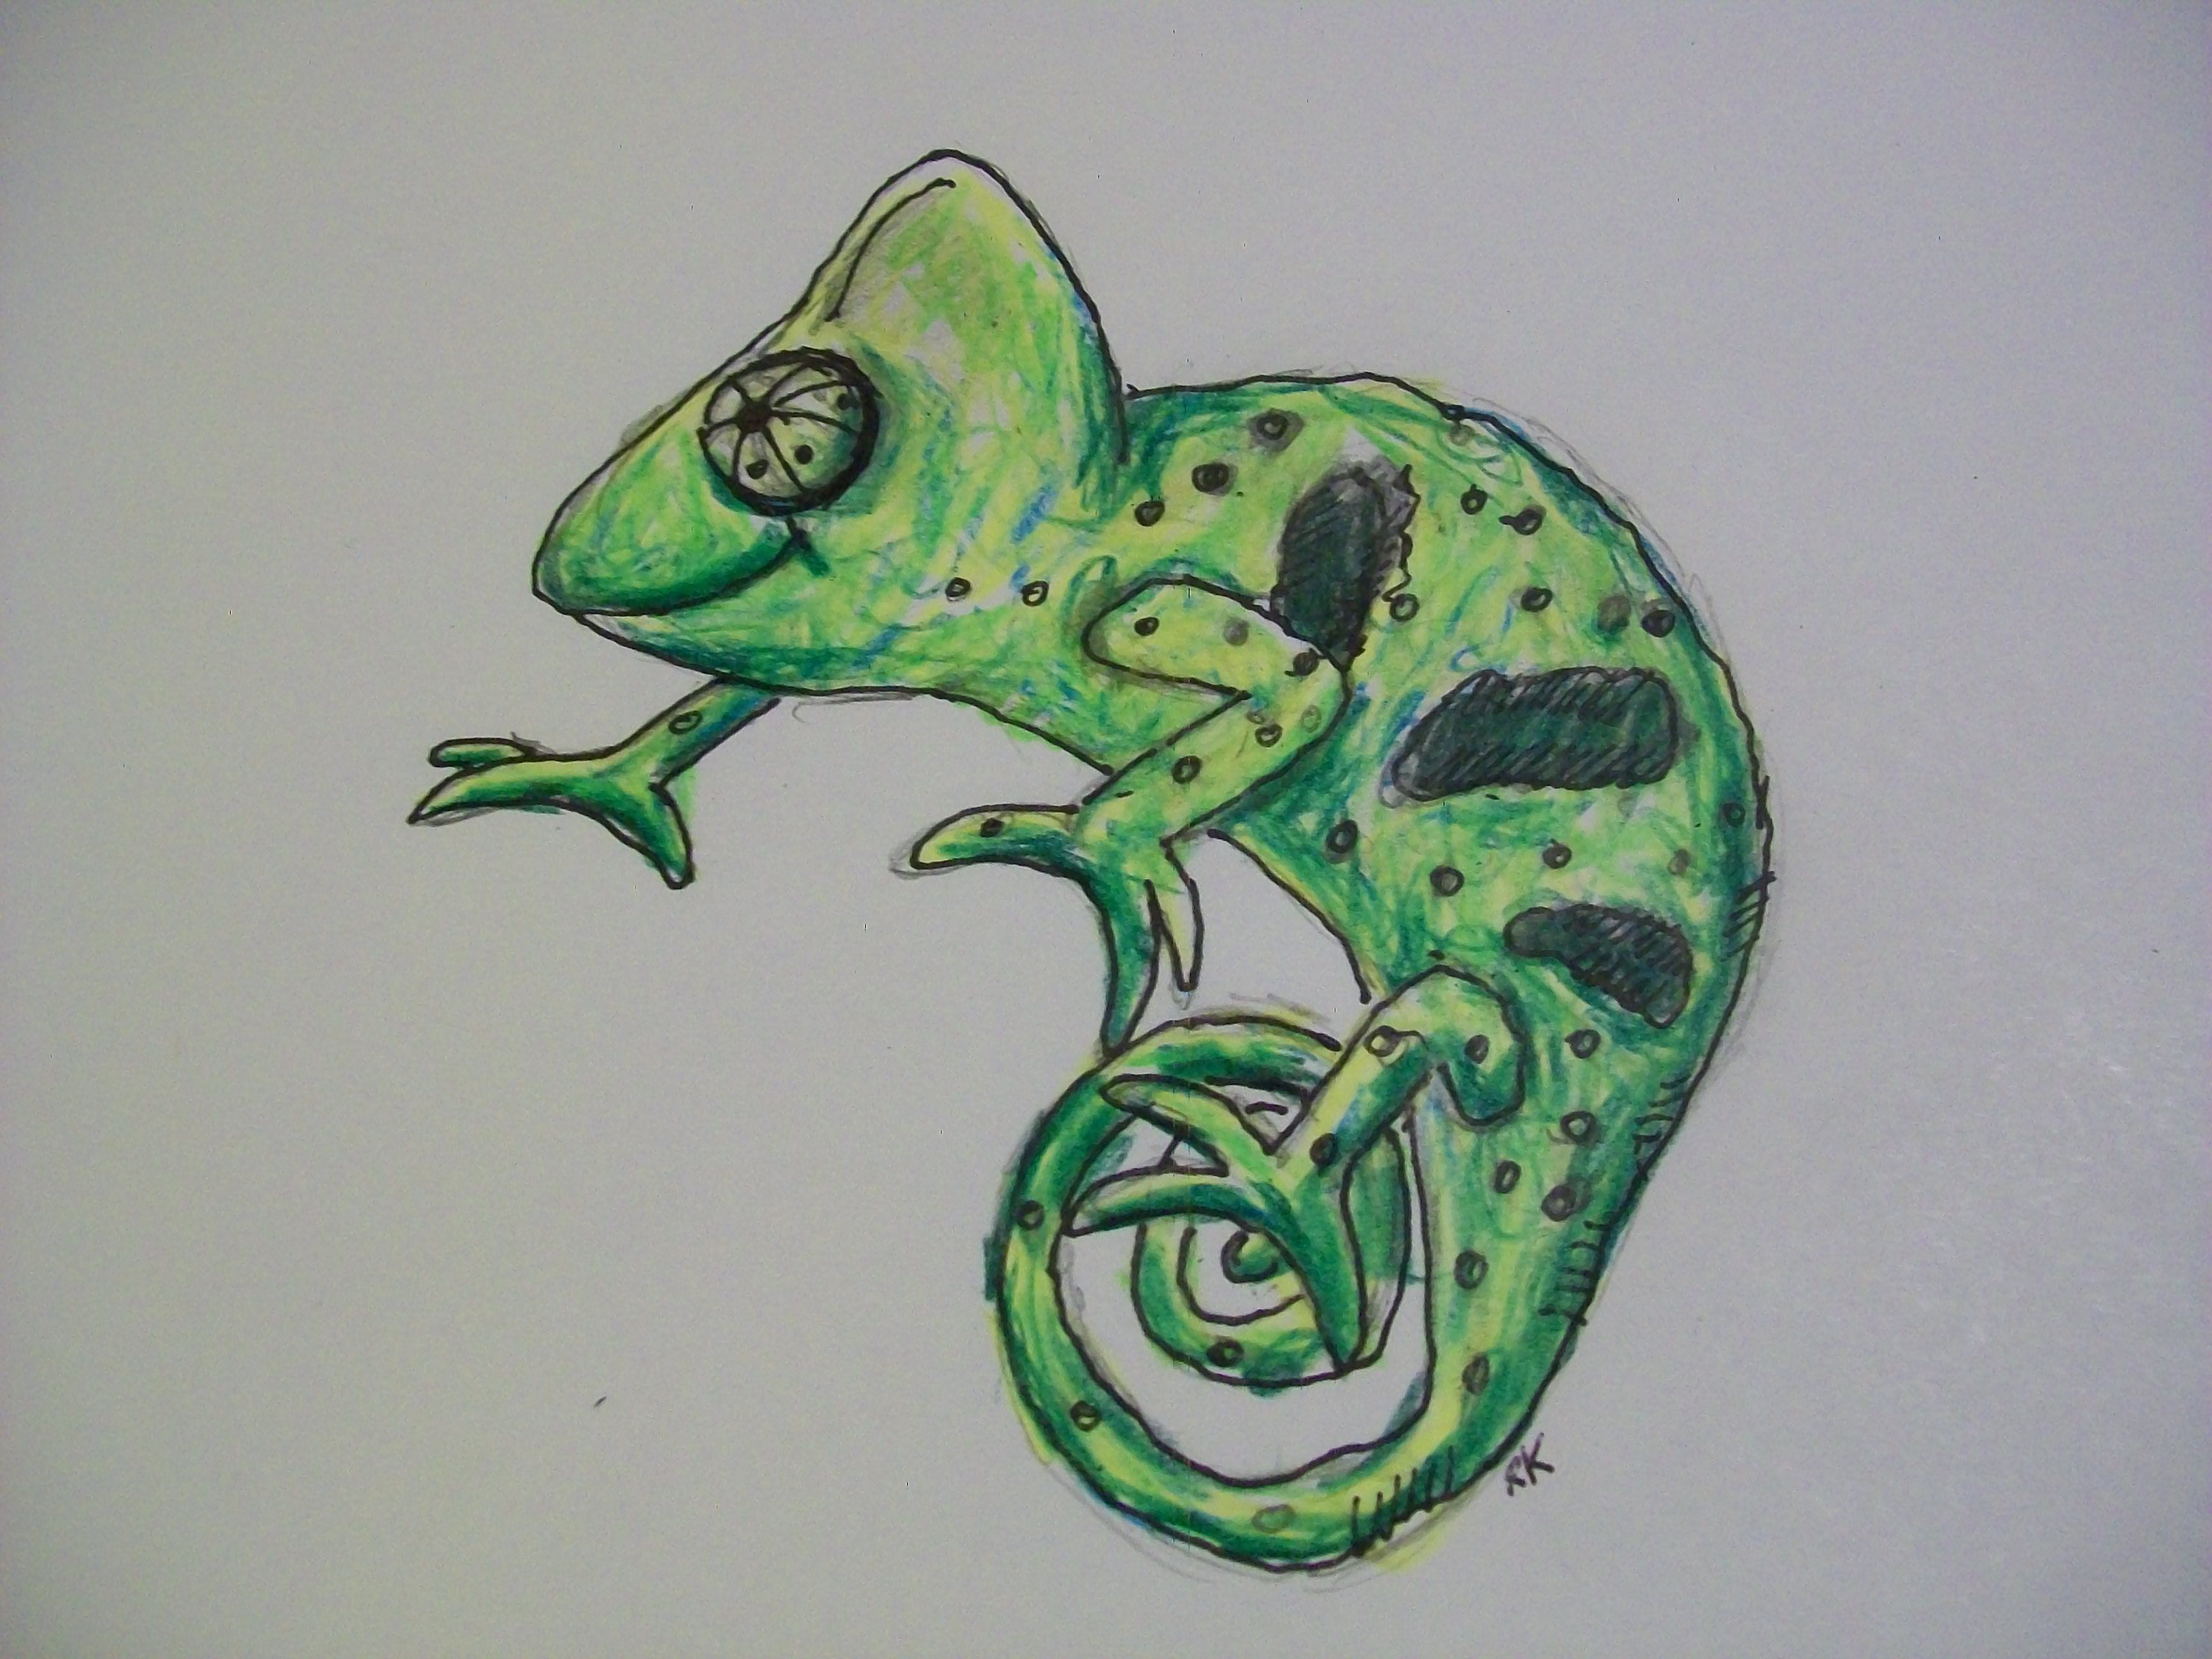 3472x2604 A Cute Reptile Drawing In Colored Pencil My Artwork